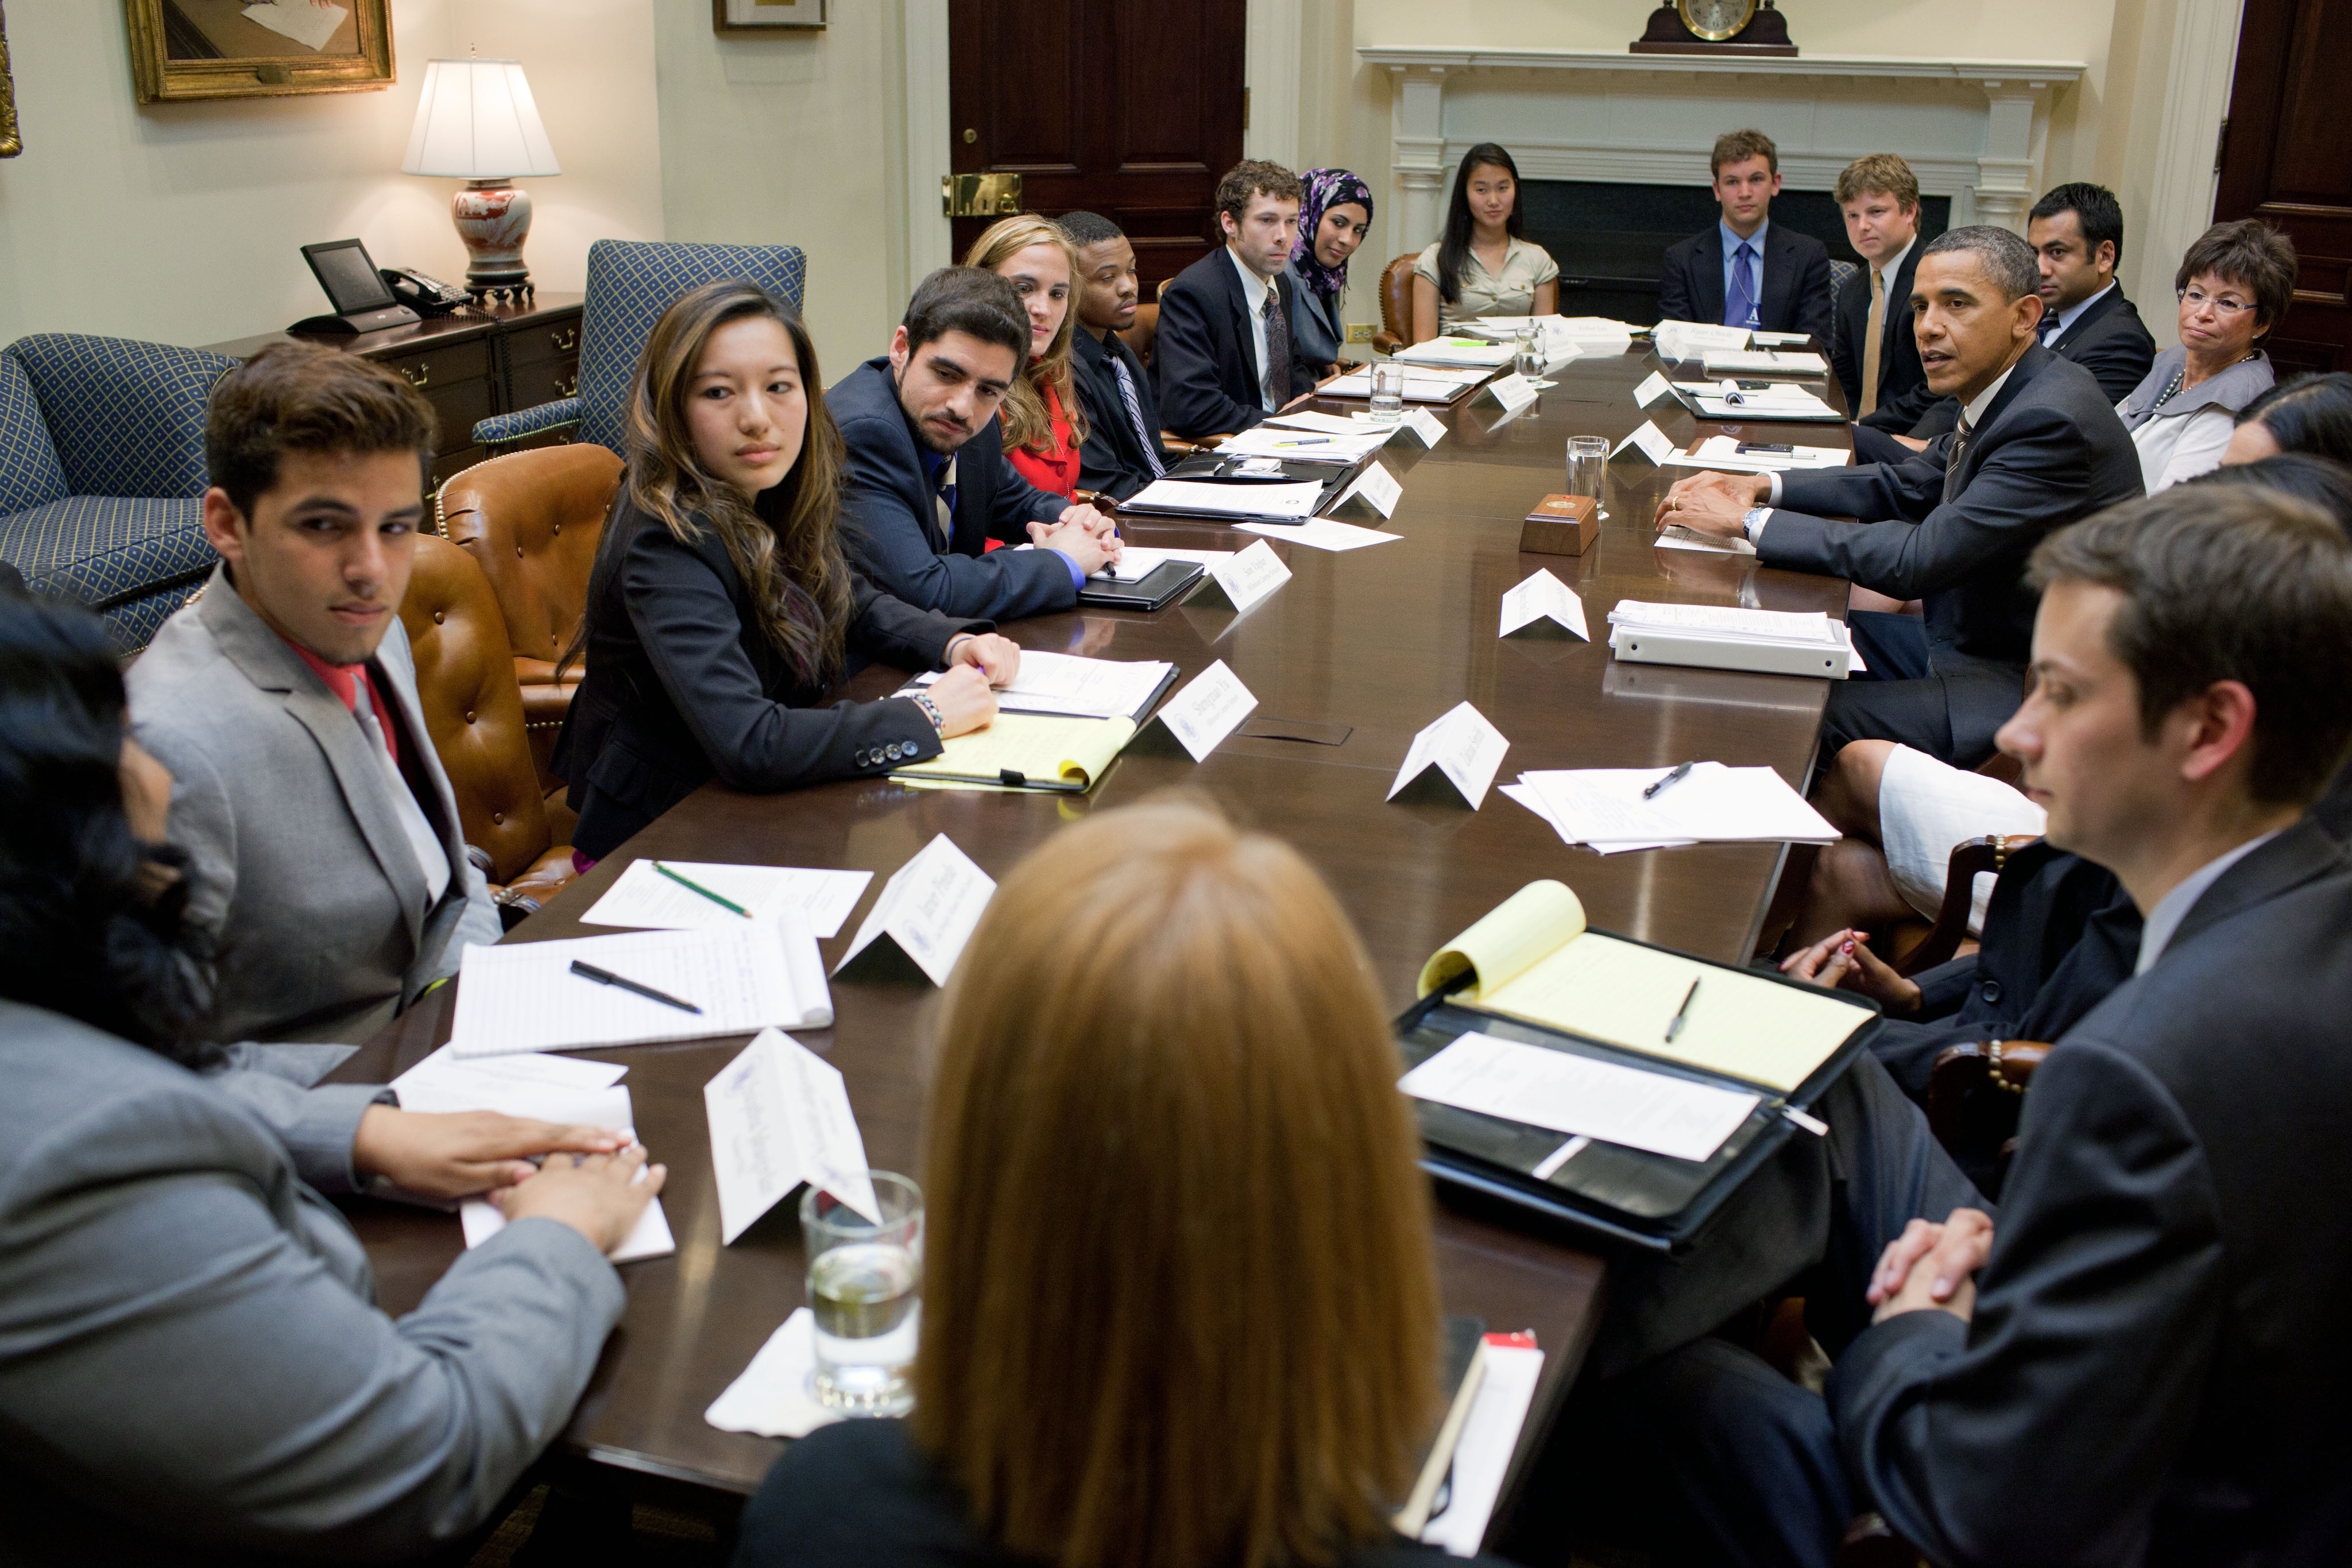 President Barack Obama drops by a meeting with young leaders